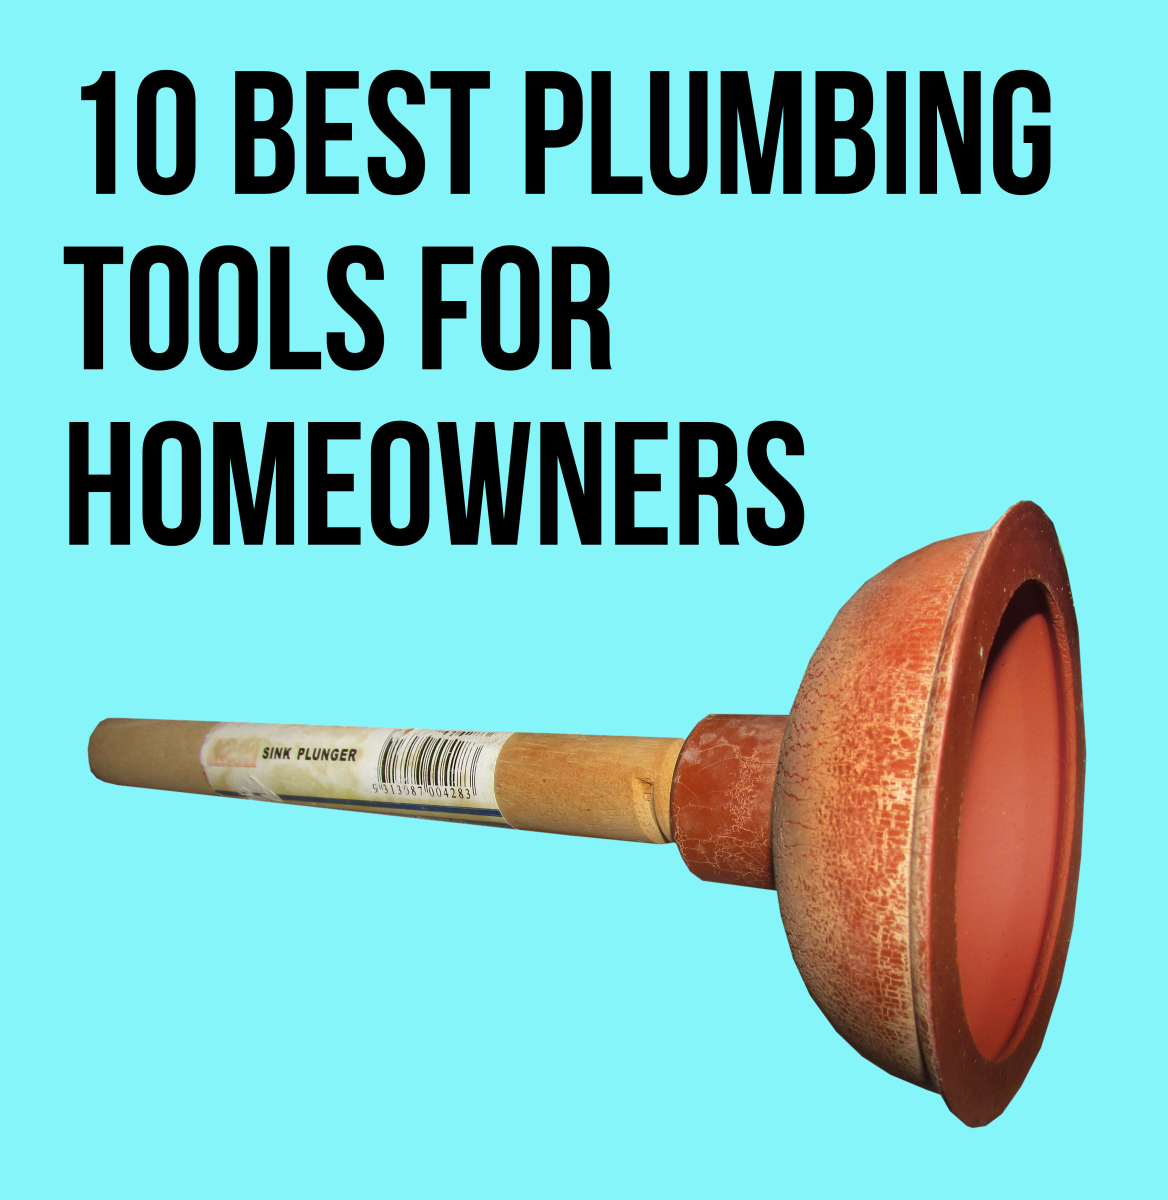 For my list of the top 10 must-have plumbing tools for homeowners, please read on...